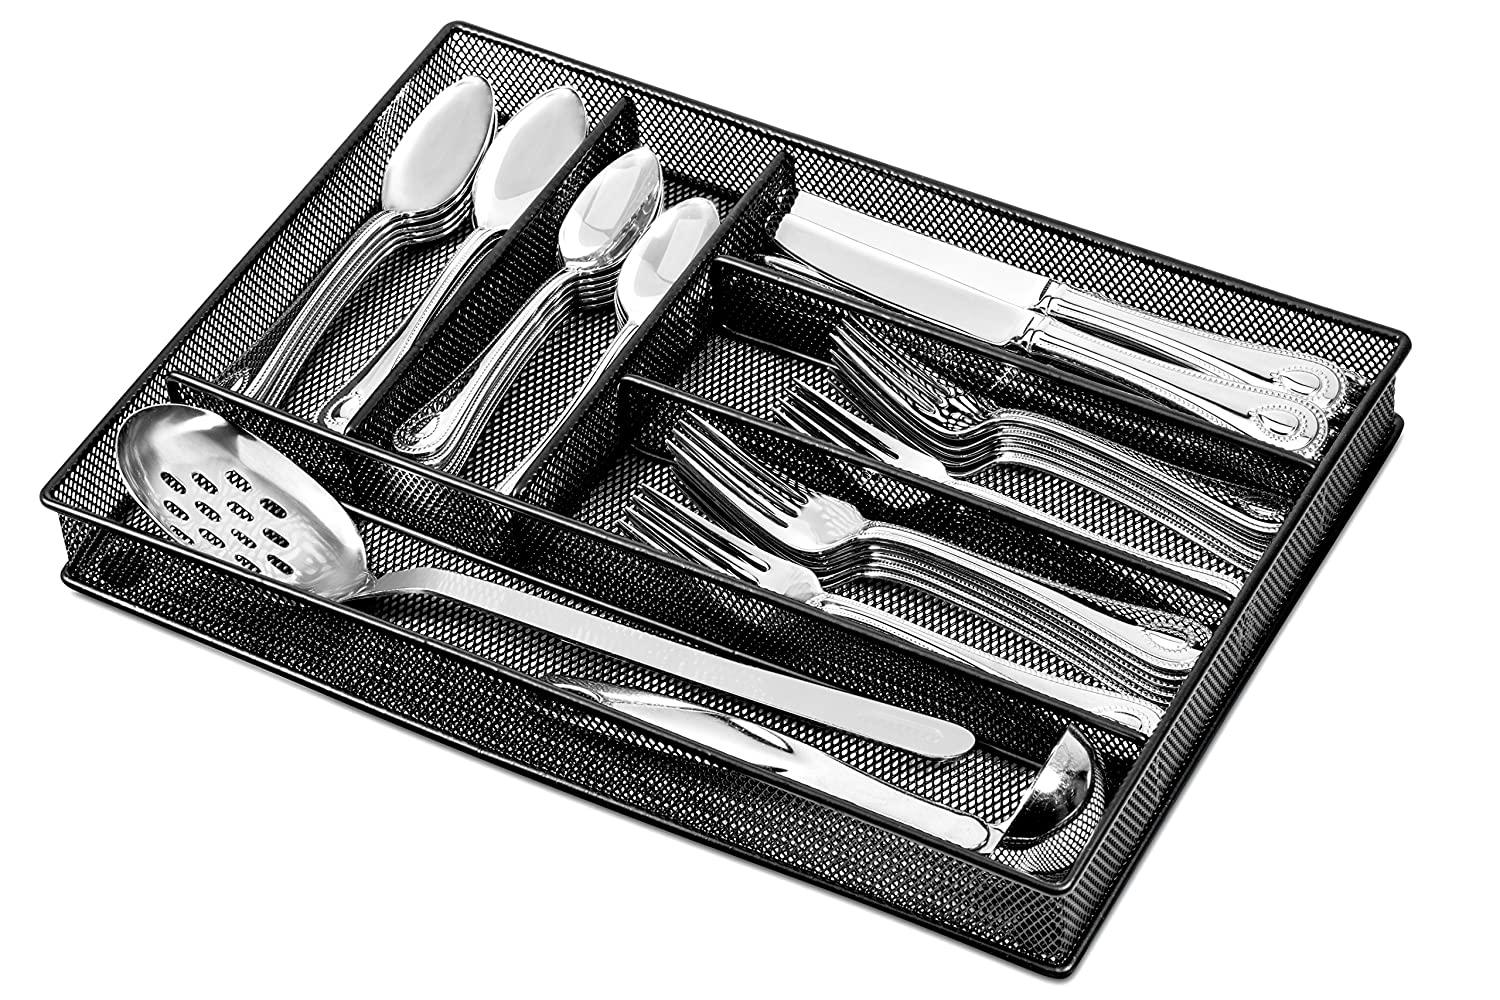 Flatware Drawer Organizer - Slip Resistant Kitchen Tray with 6 Sections to Neatly Arrange Cutlery and Serving Utensils. Also Great to Keep your Desk Drawer and Office Supplies Well Organized (Black) Masirs 5205